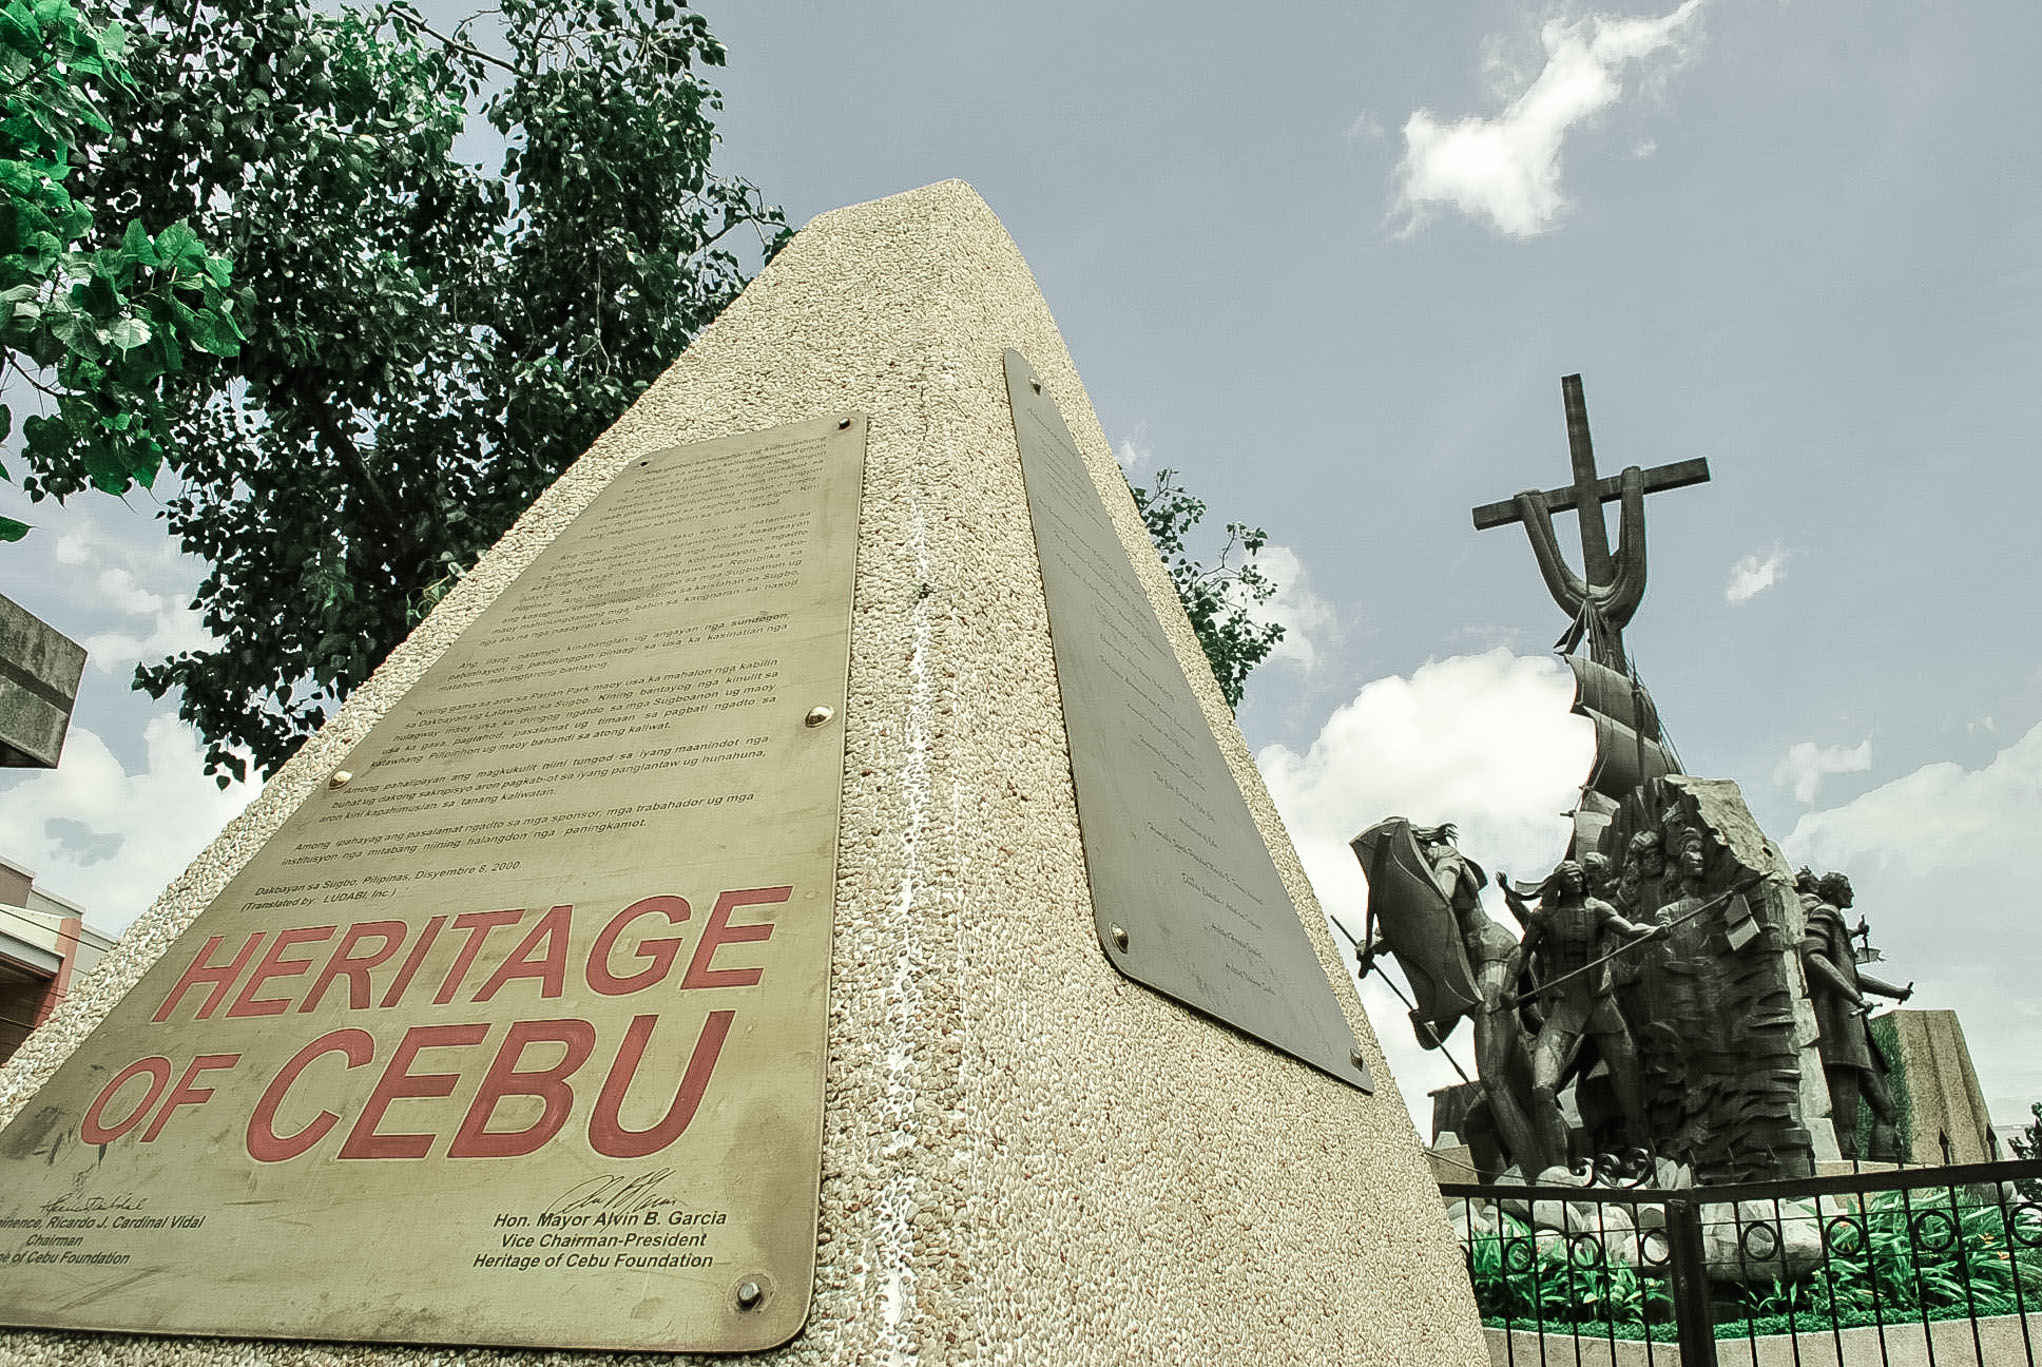 A Guide to Old Cebu Walking Tour